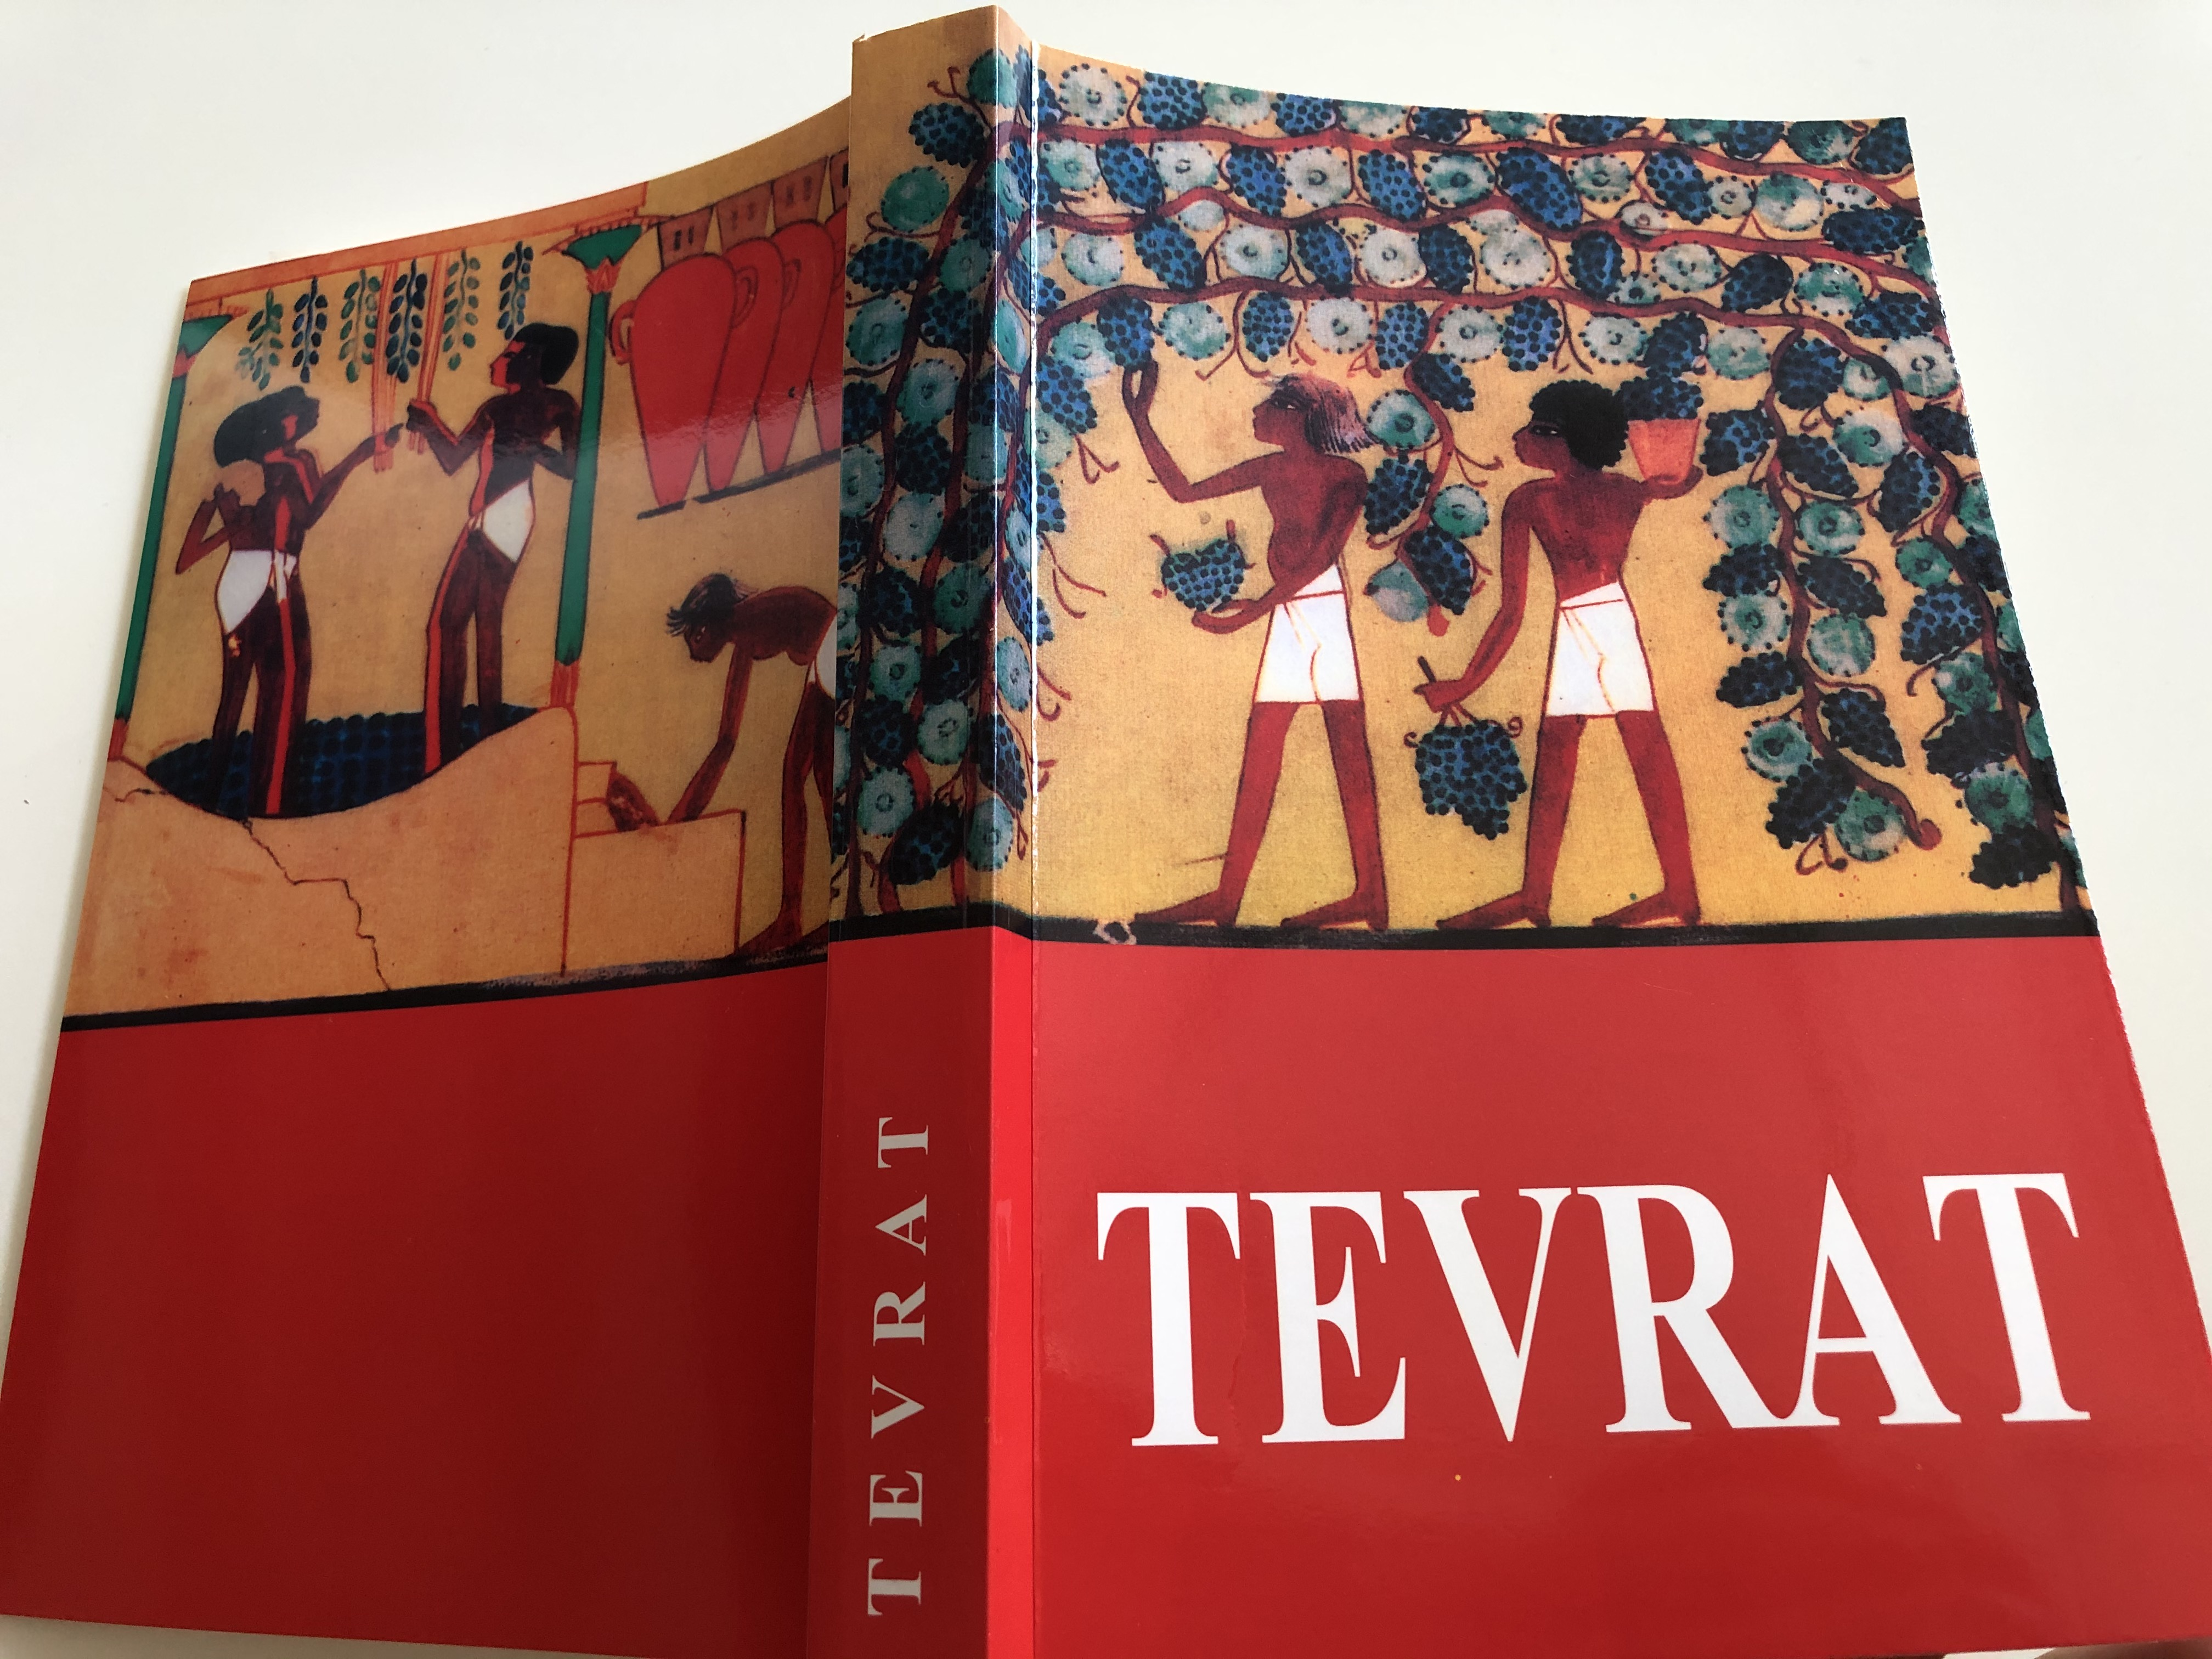 tevrat-turkish-bible-stories-translated-from-french-texts-by-dr.-jur-hakk-dem-rel-11-.jpg